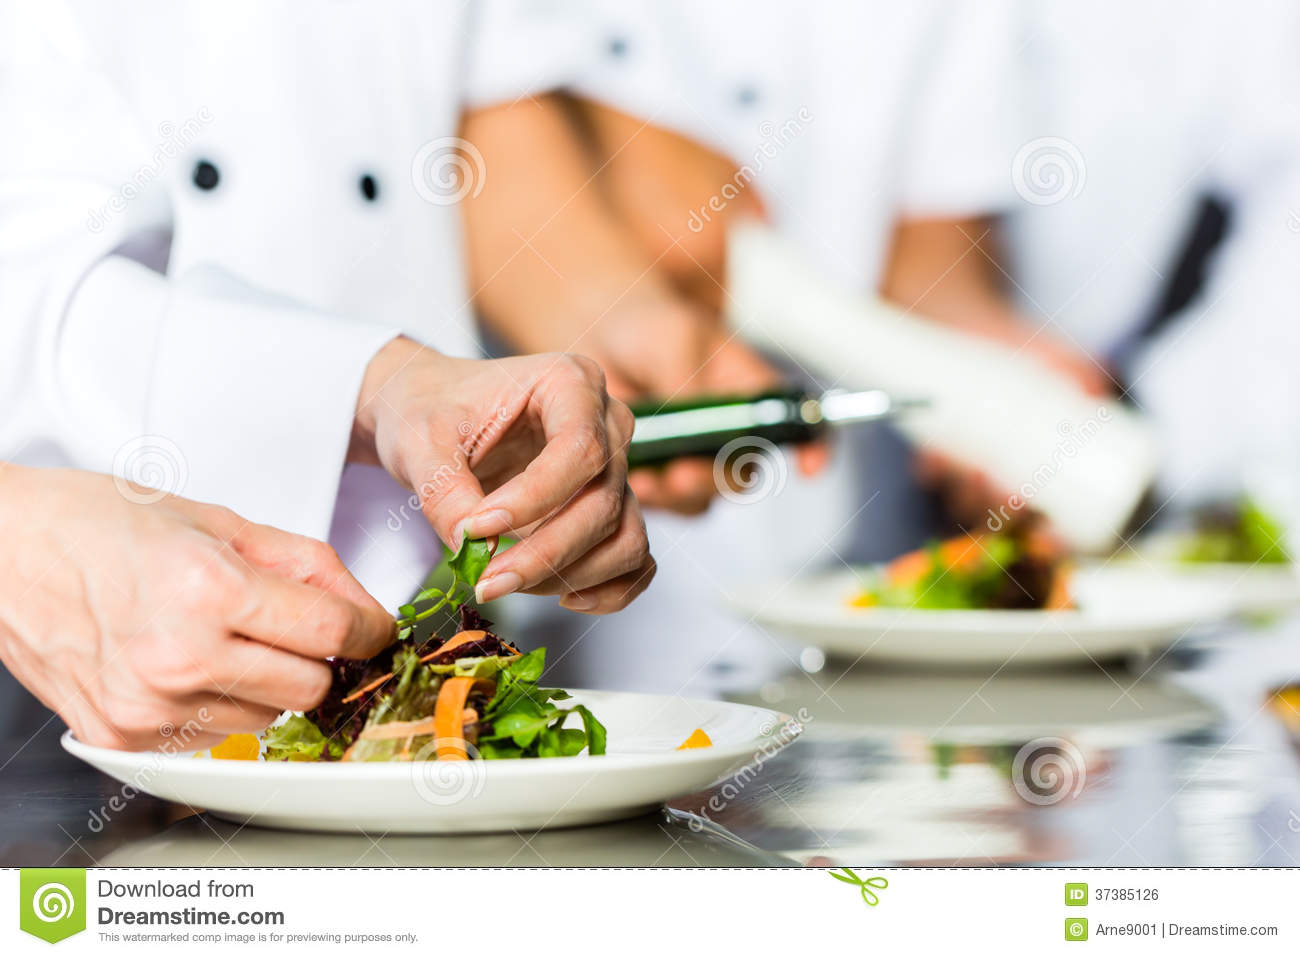 Restaurant Kitchen Chefs Chef Stock Photos Images & Pictures  143572 Images